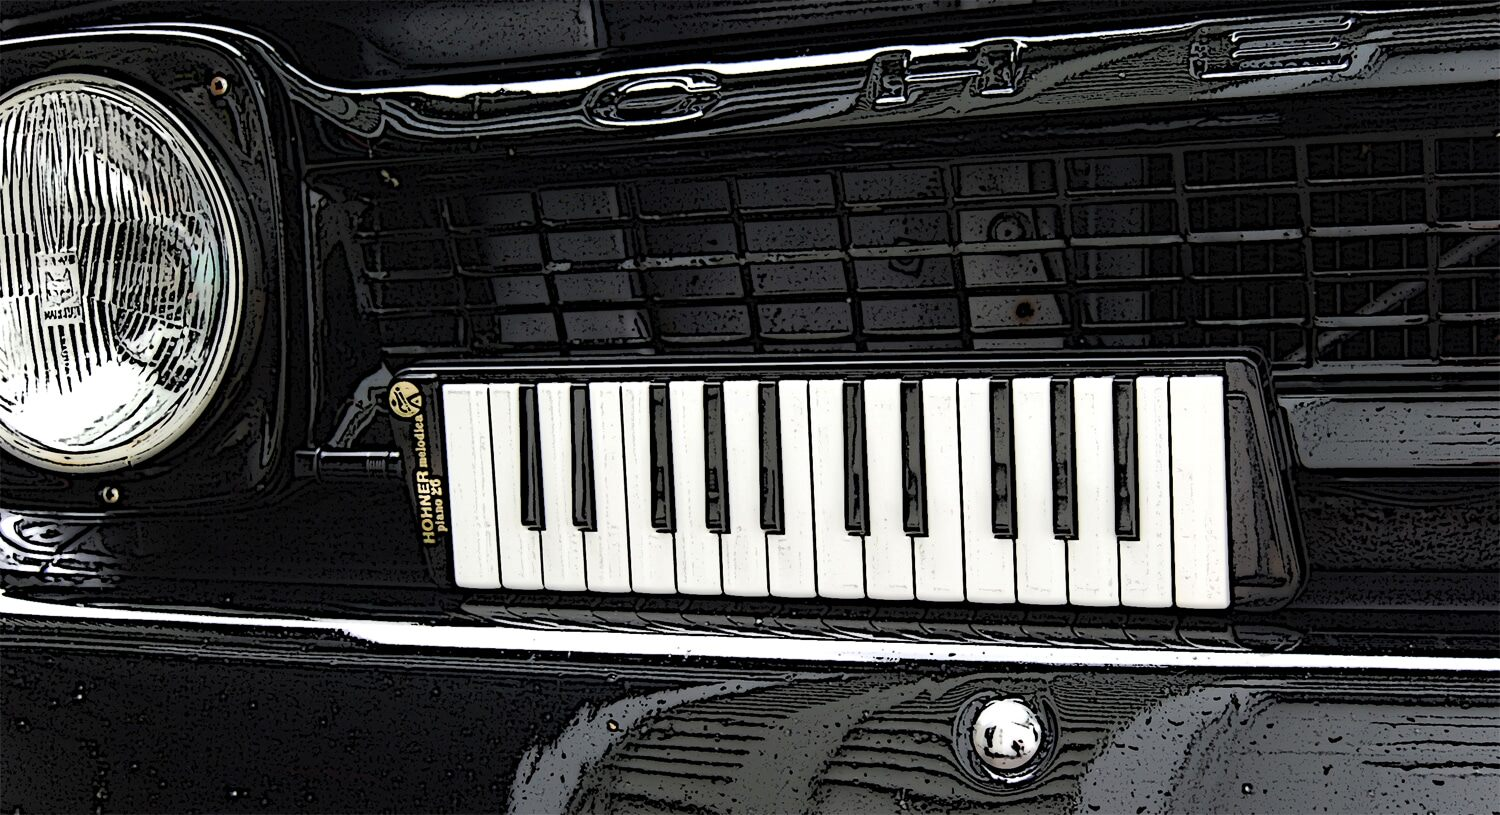 Melodica in the grill